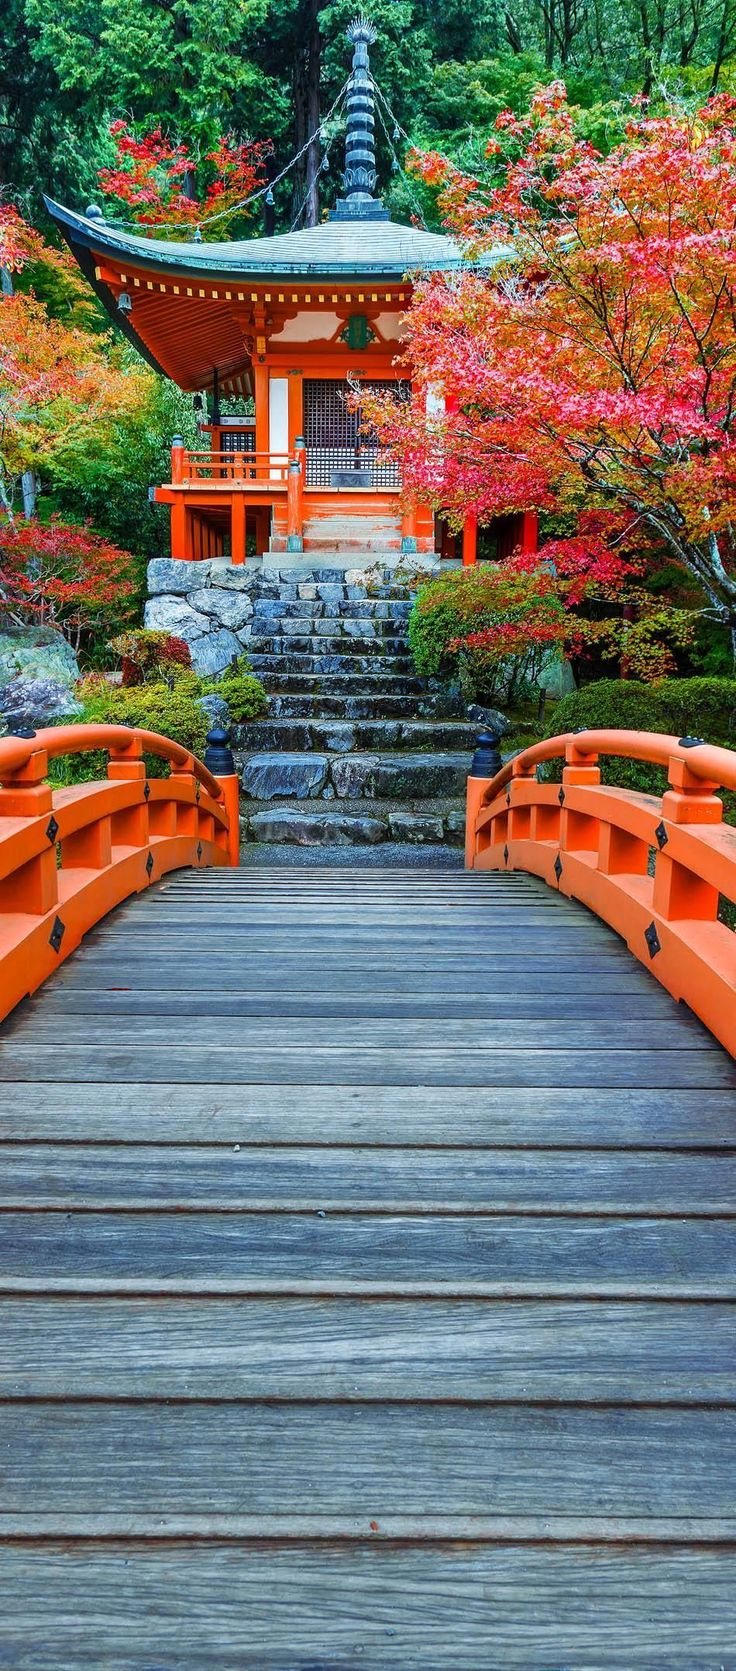 Best 485 Travel Japan ideas on Pinterest   Trips, Destinations and Asia